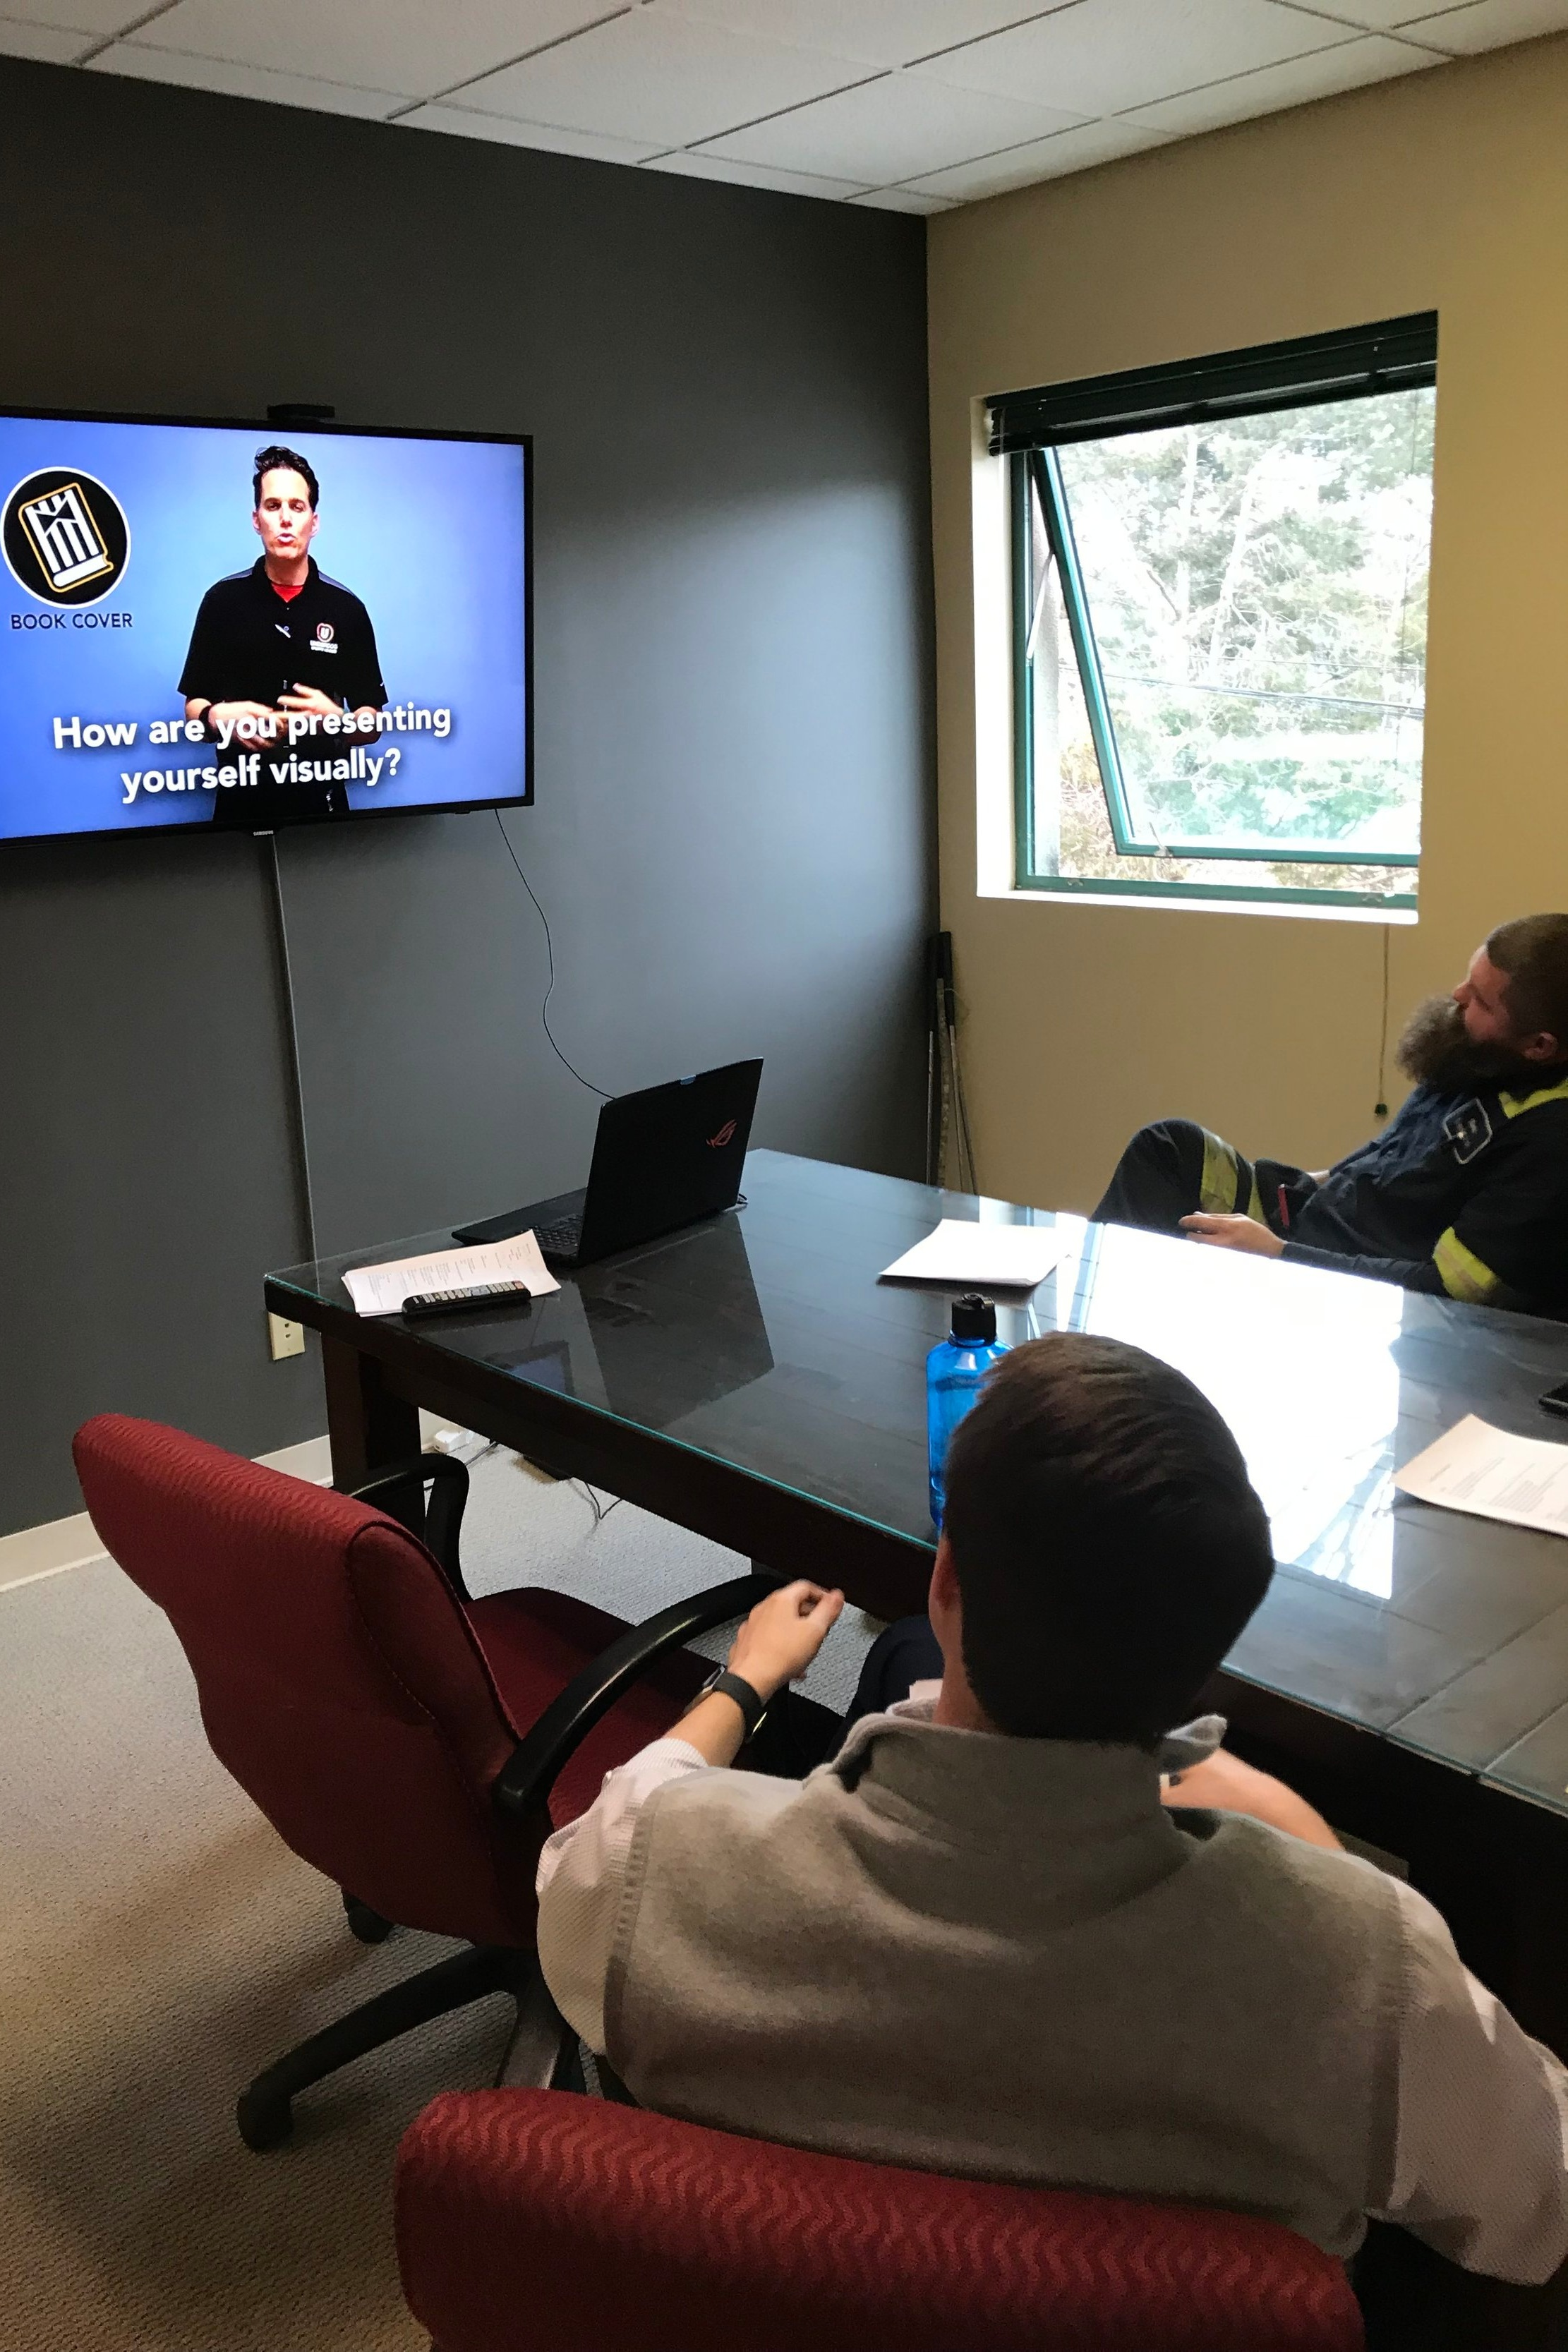 Our Friends at LXC Sport and Social have new refs watch a Social Ref video course in the office.